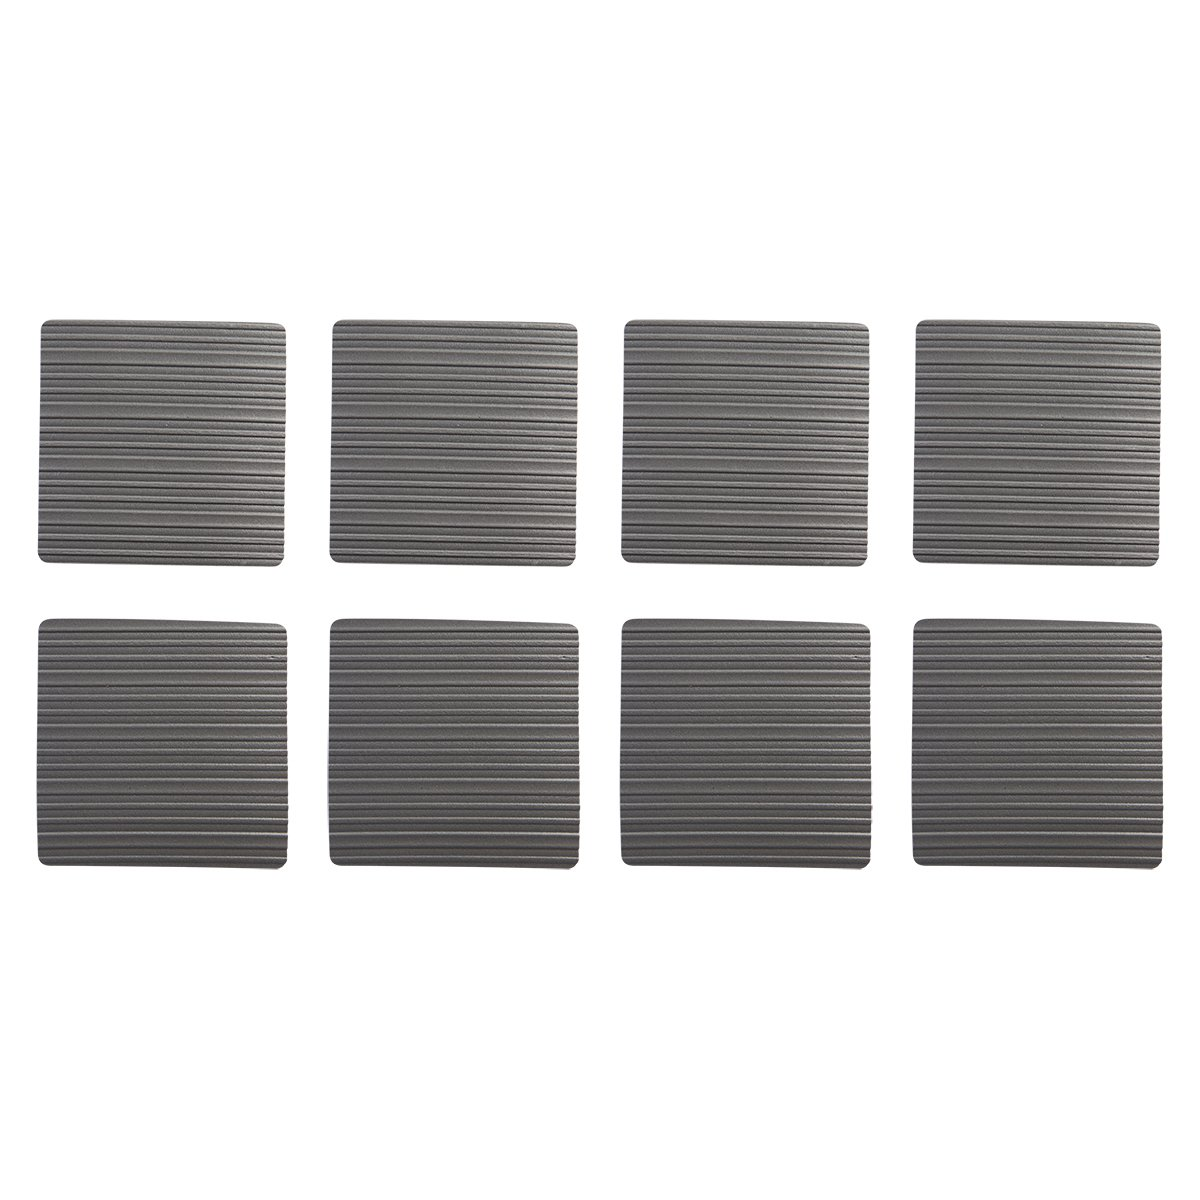 Stay! Furniture Pads, Square Furniture Grippers, Gripper Pads, Furniture Pads for Hardwood Floors and Carpet, Anti-Slip | Square, Gray, Set of 8 (6'') by Stay Furniture Grippers (Image #1)